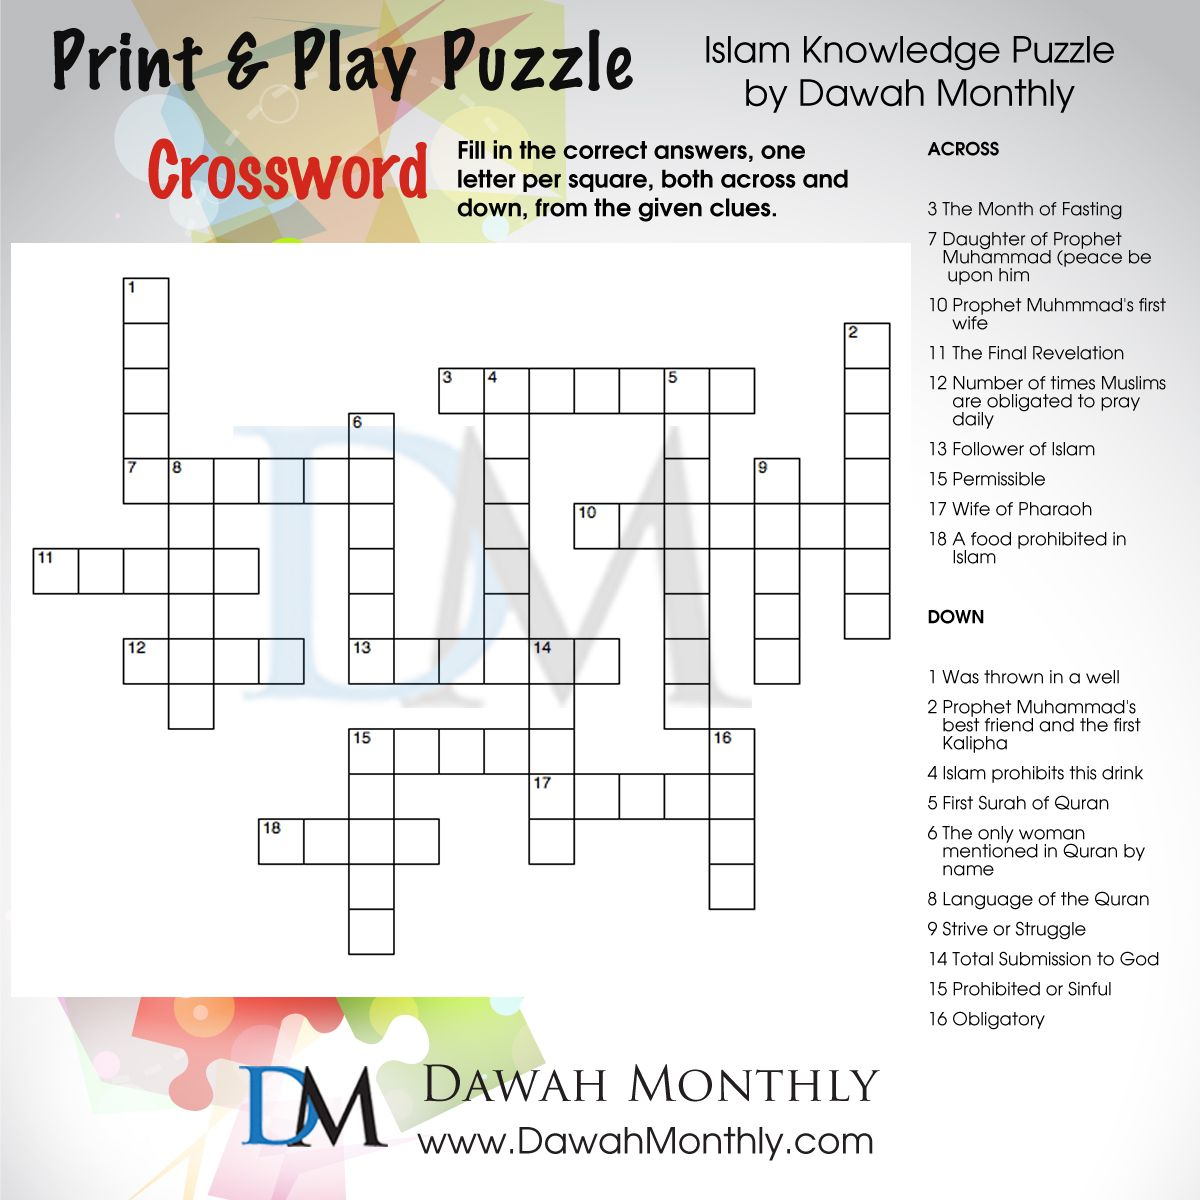 islam crossword puzzle puzzles islamic posters ramadan crafts diy eid cards. Black Bedroom Furniture Sets. Home Design Ideas